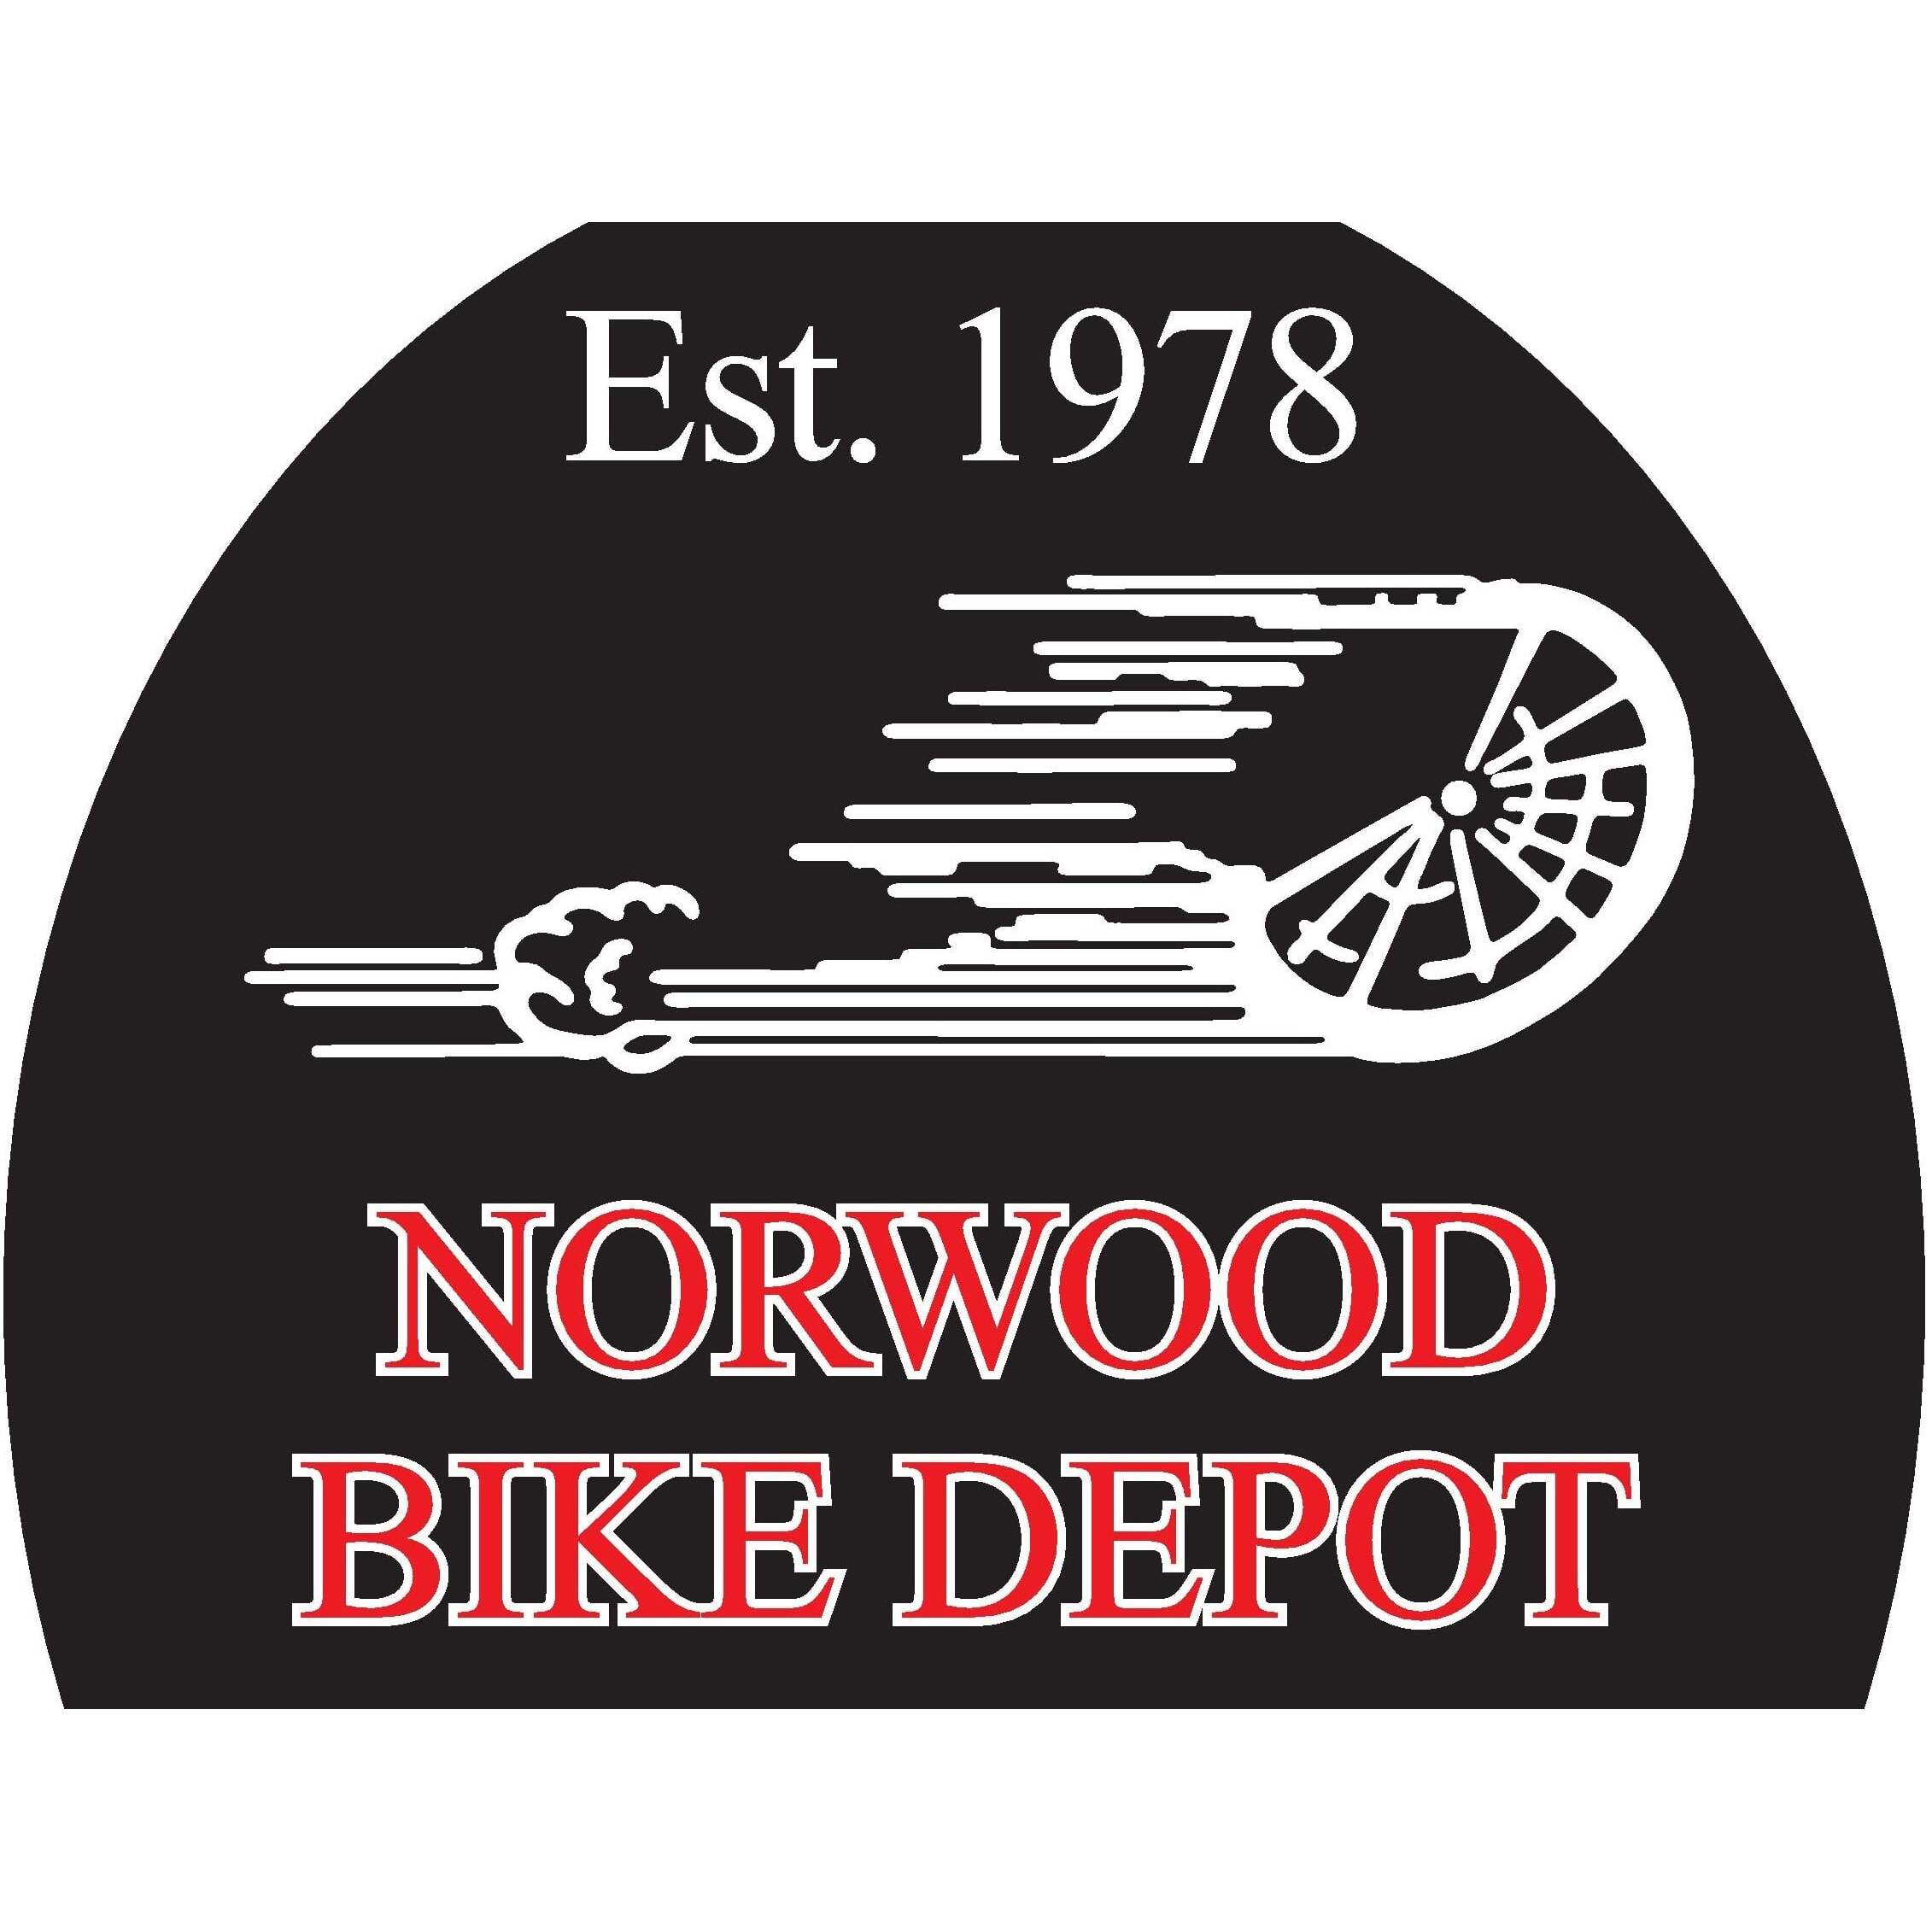 Norwood Bicycle Depot - Norwood, MA - Bicycle Shops & Repair